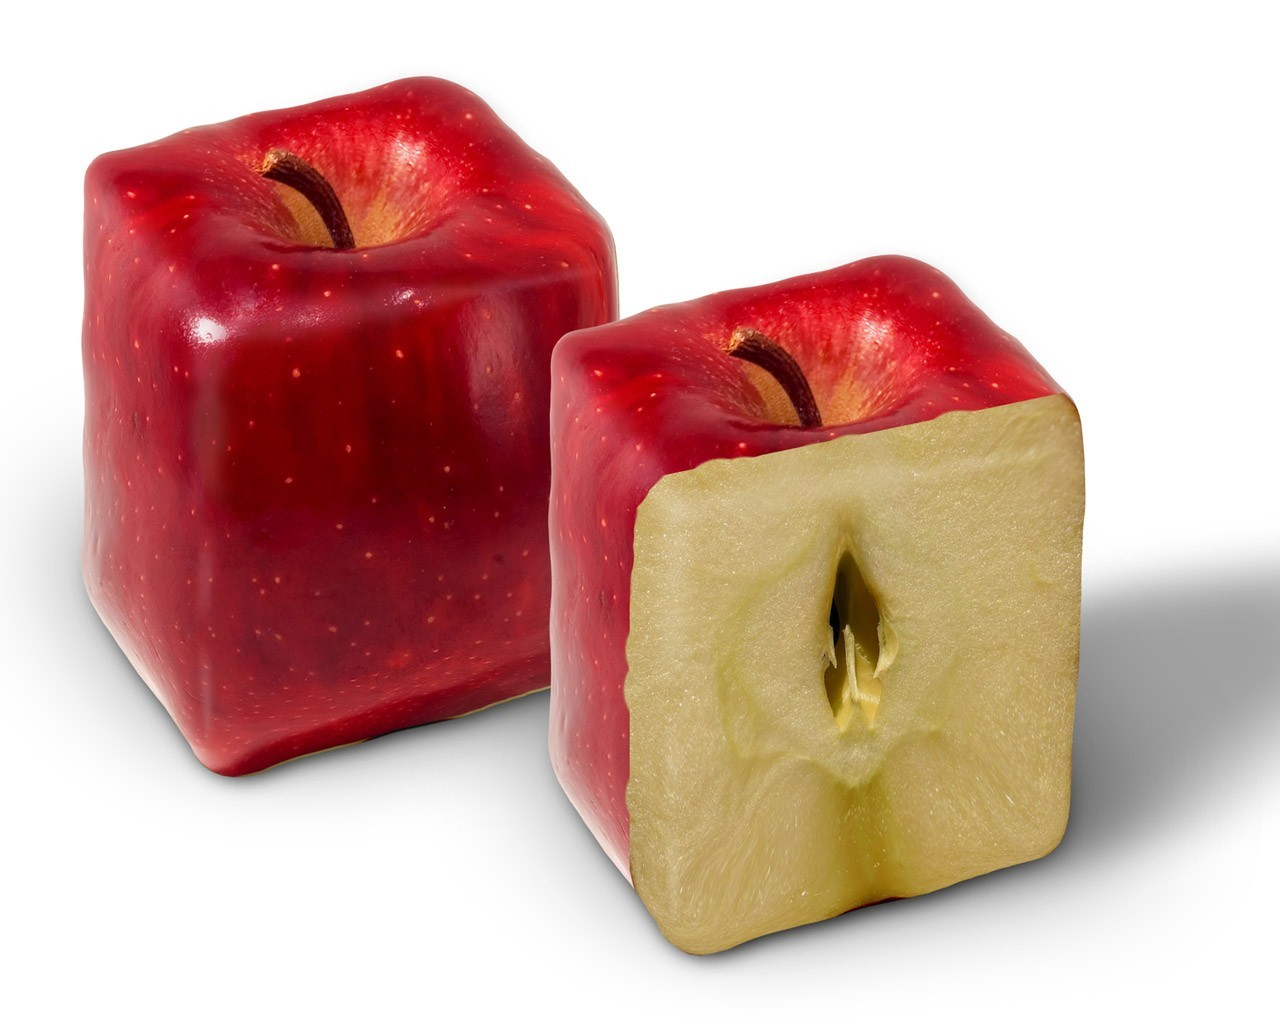 cubes apples HD Wallpaper